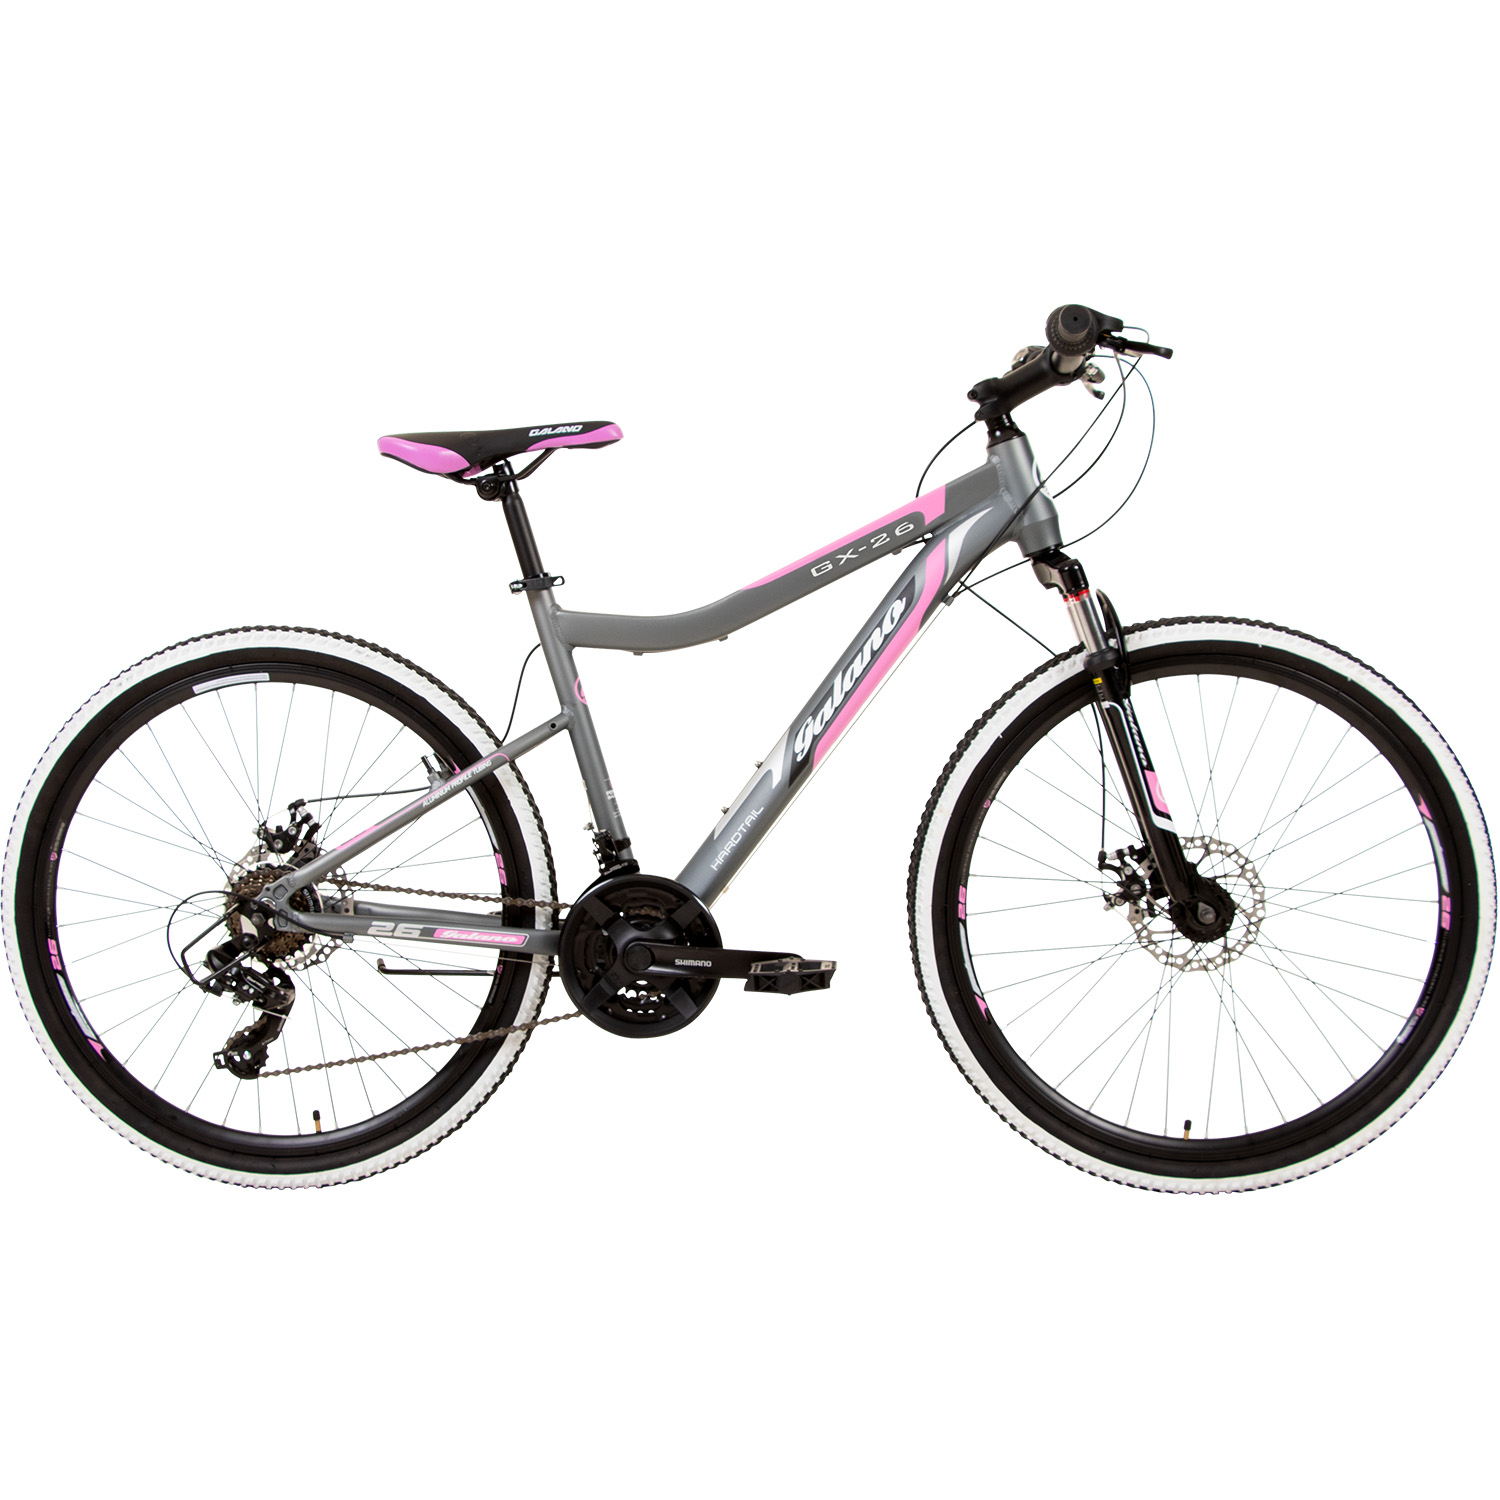 galano gx 26 26 zoll mountainbike hardtail mtb. Black Bedroom Furniture Sets. Home Design Ideas